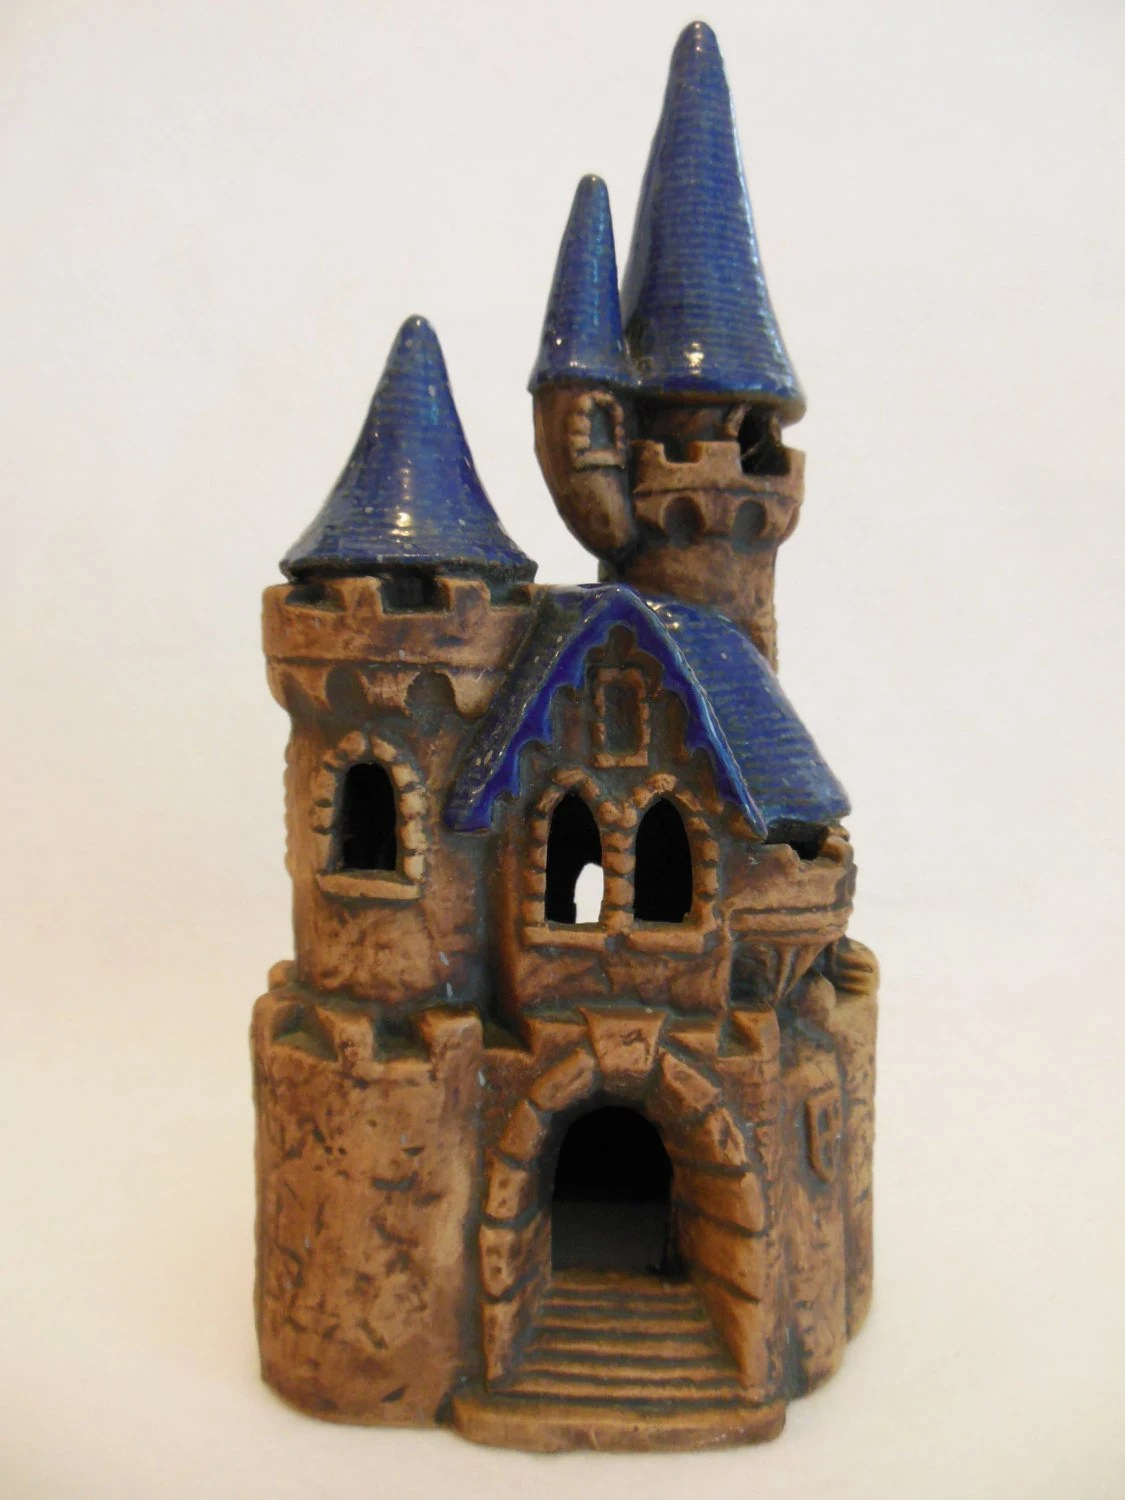 CASTLE  Ceramic Castle  Garden Decor  Aquarium